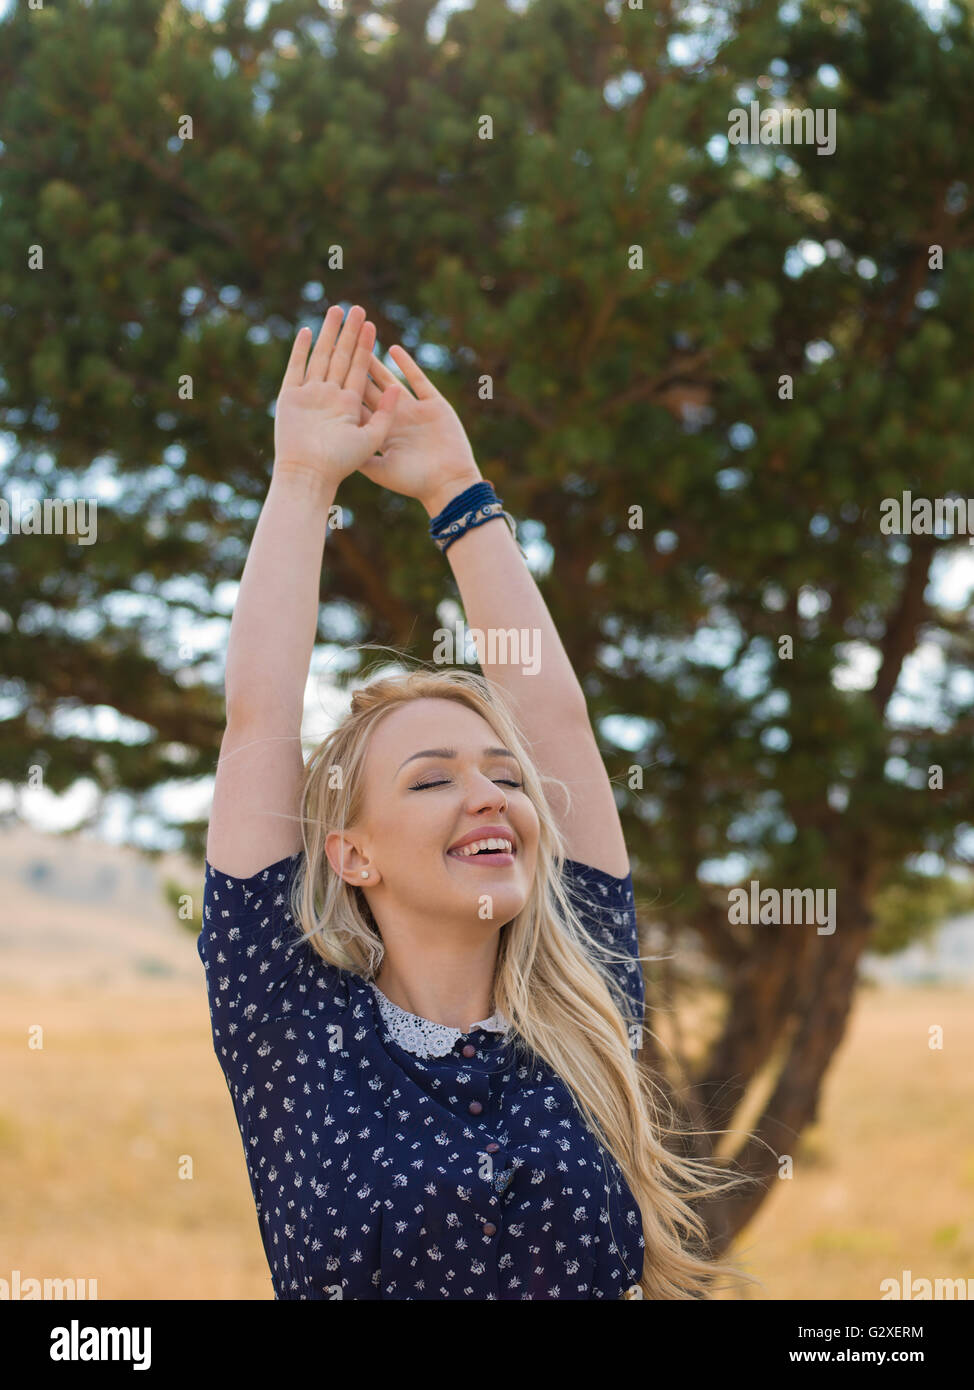 Bright Portrait of Happy Woman at Summer Field - Stock Image